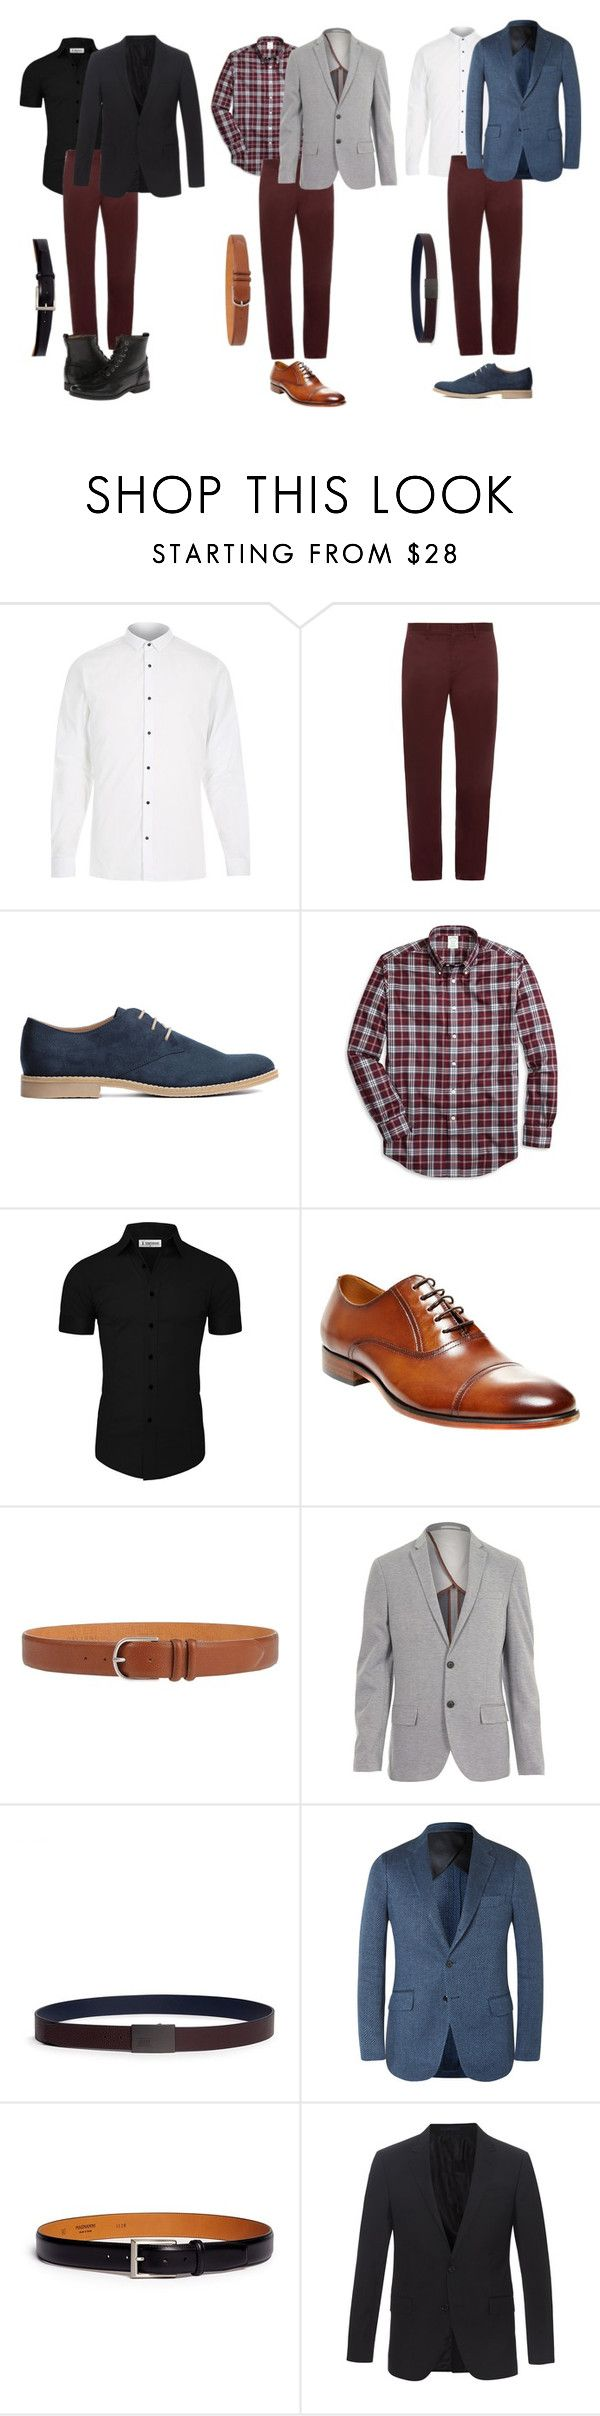 """Men burgundy style pants"" by baloure ❤ liked on Polyvore featuring River Island, Burberry, H&M, Brooks Brothers, Steve Madden, Orciani, Armani Collezioni, Magnanni, Lanvin and Frye"